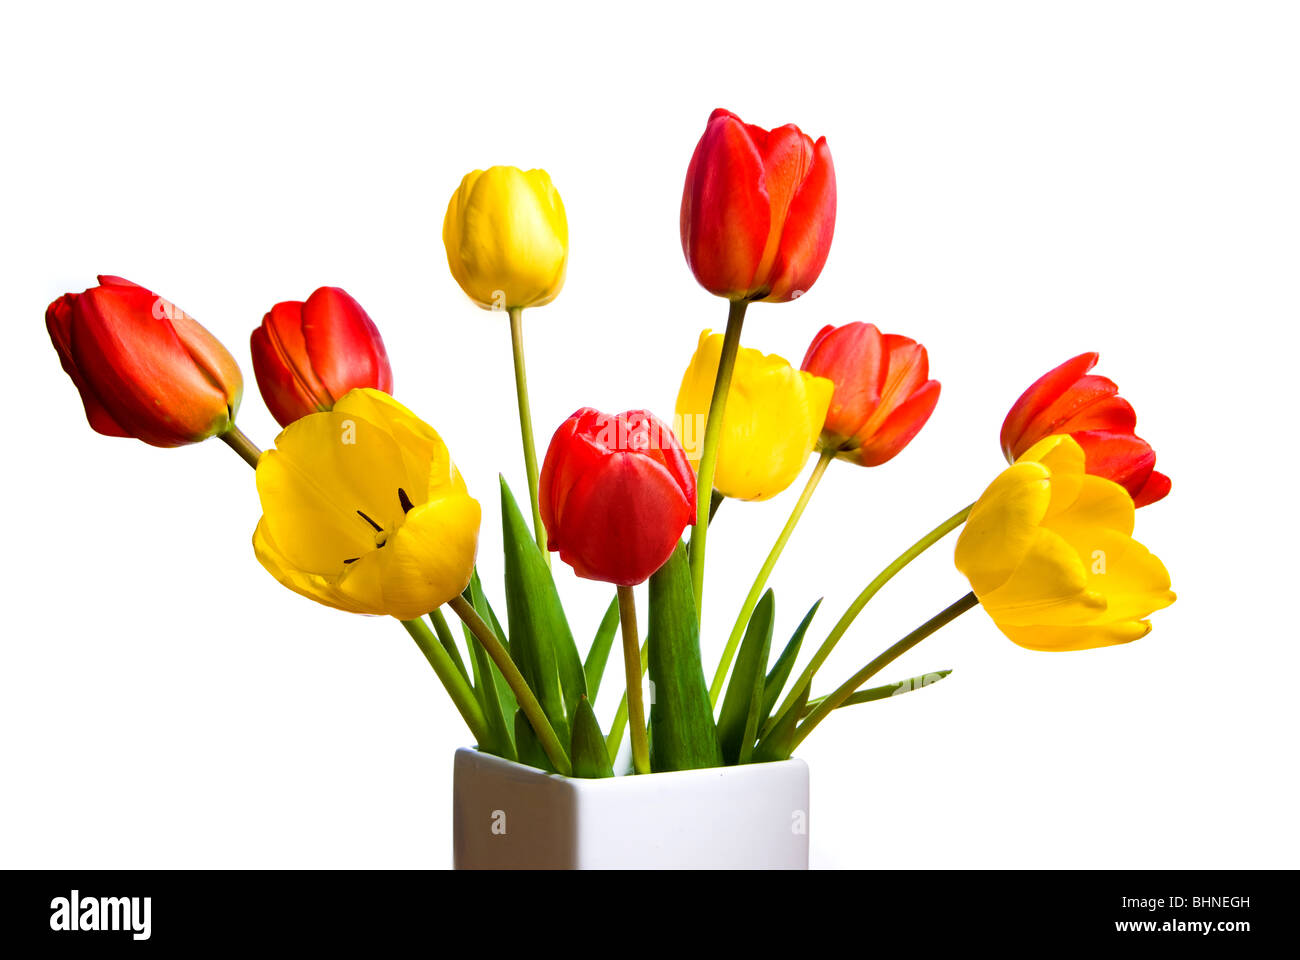 a bunch of Tulips flowers - Stock Image